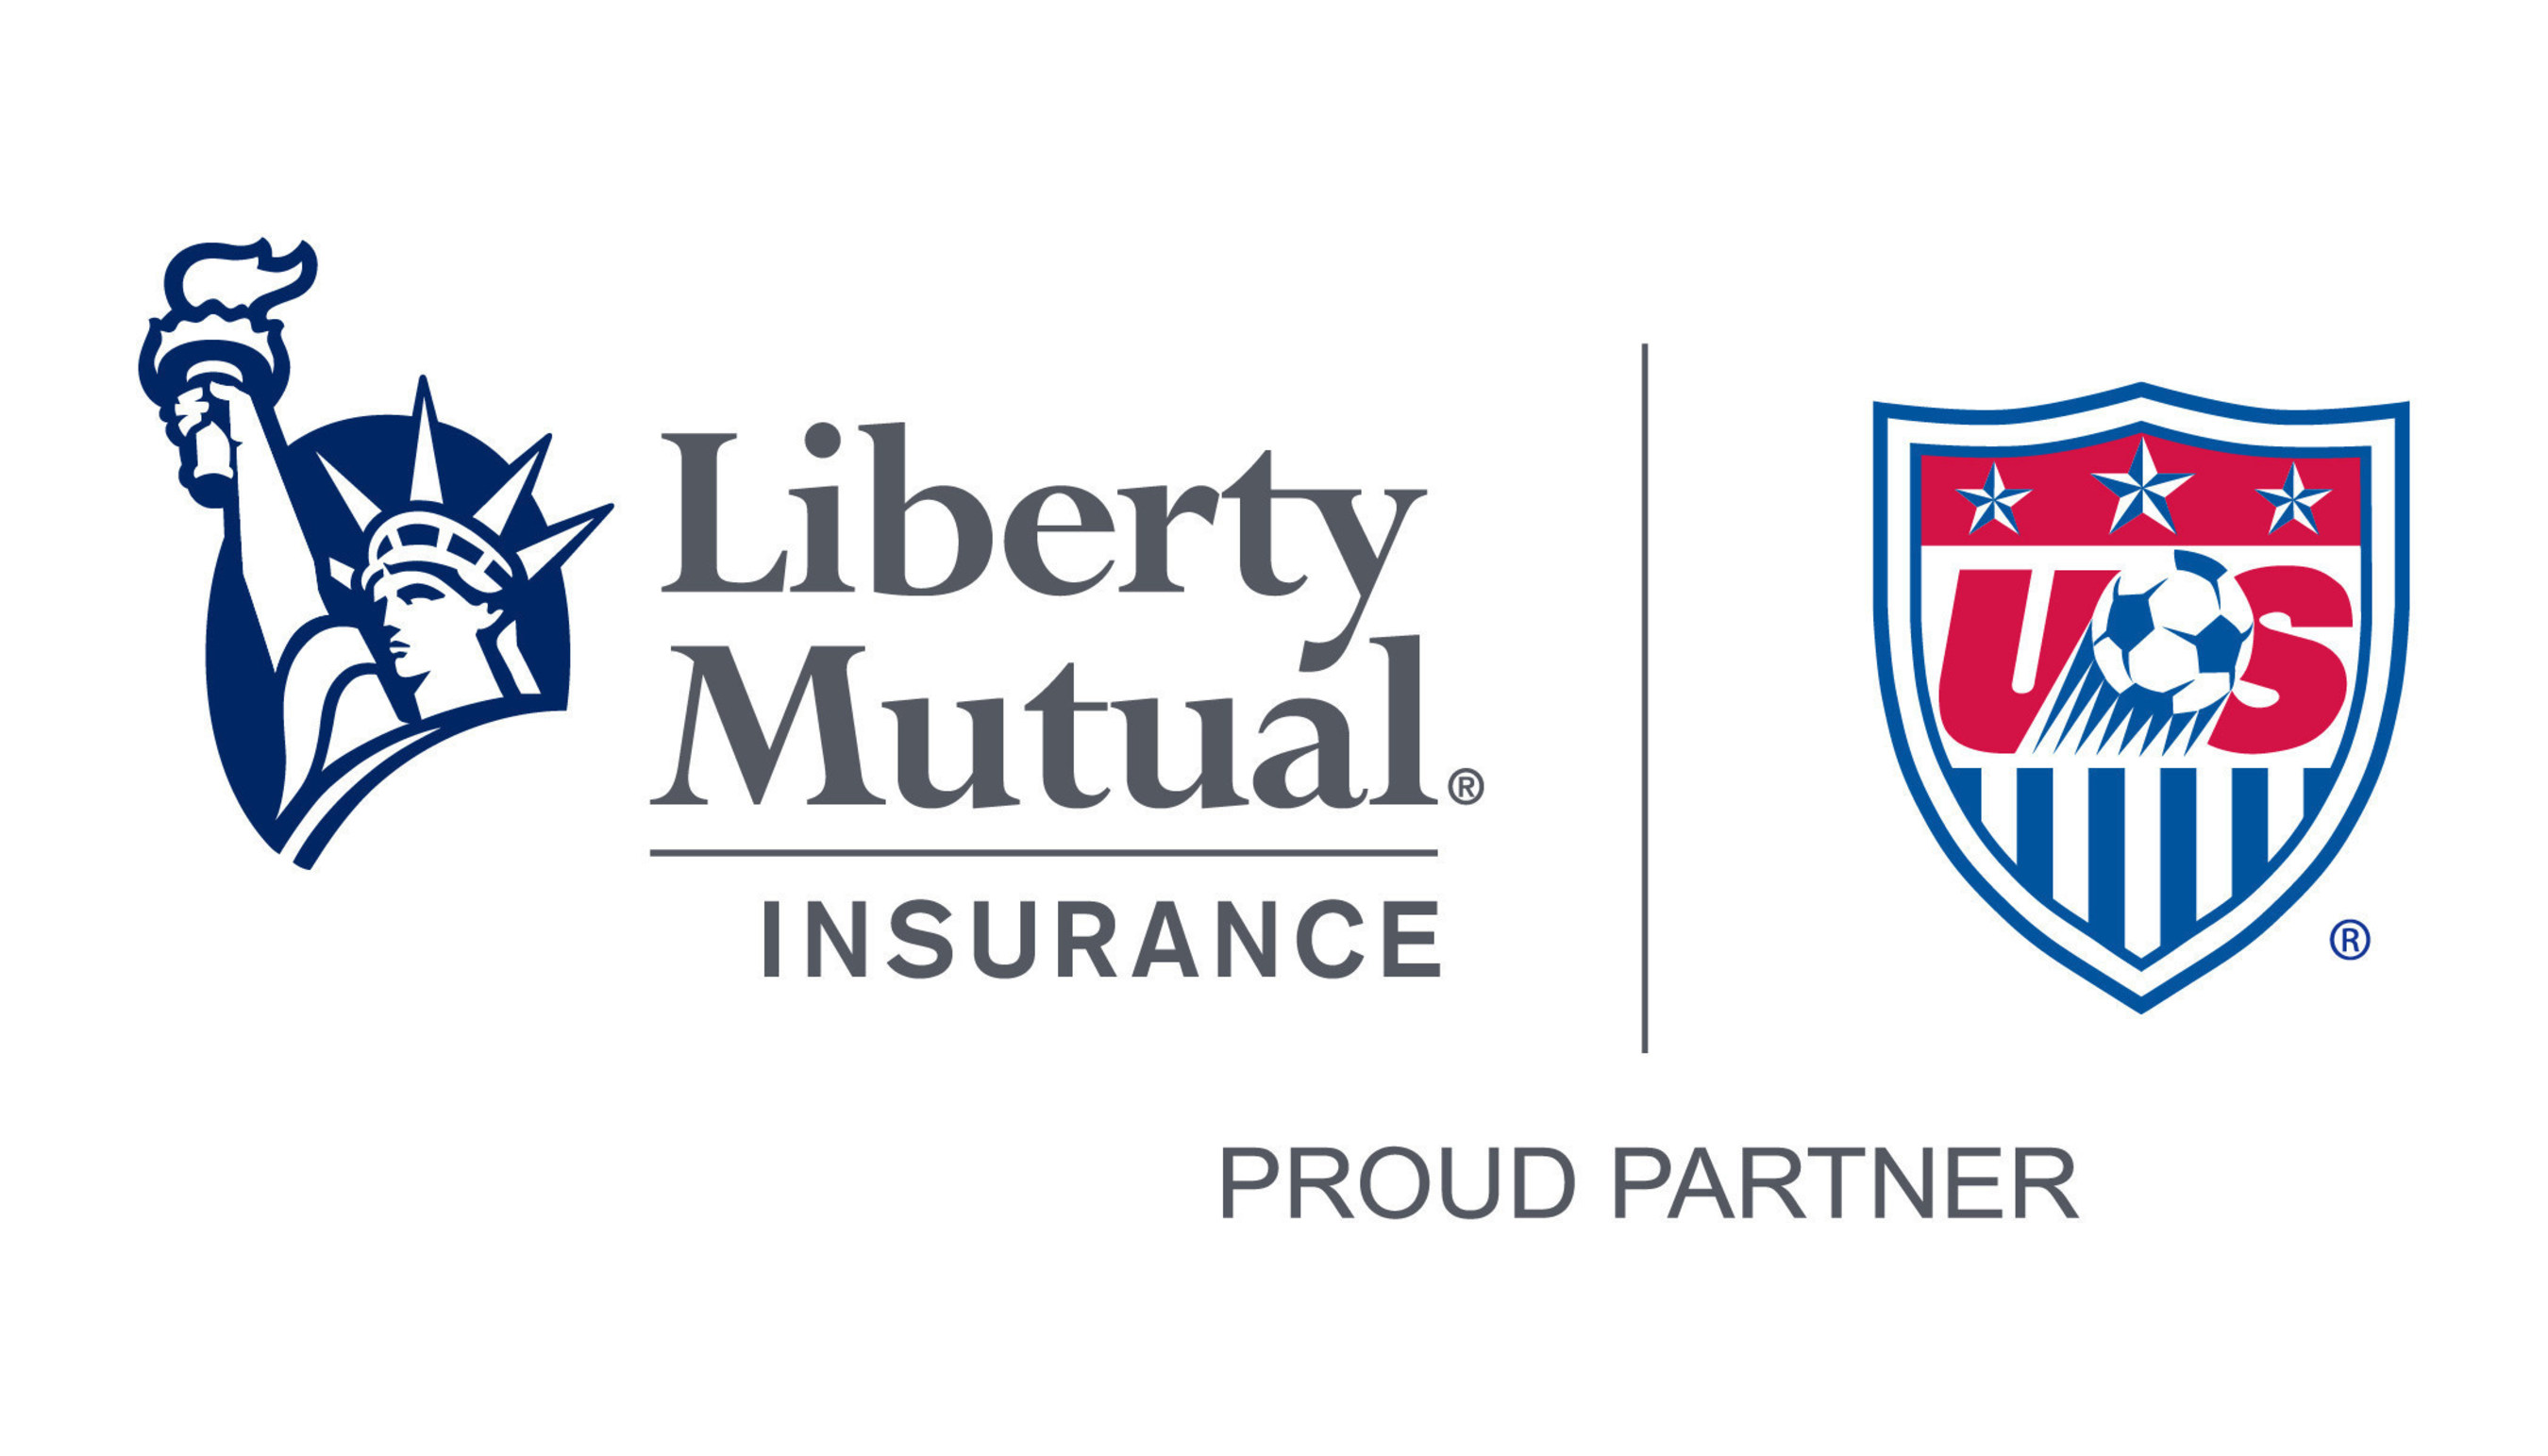 Liberty Mutual Insurance today launched its new partnership as the Official Insurance Sponsor of US Soccer.